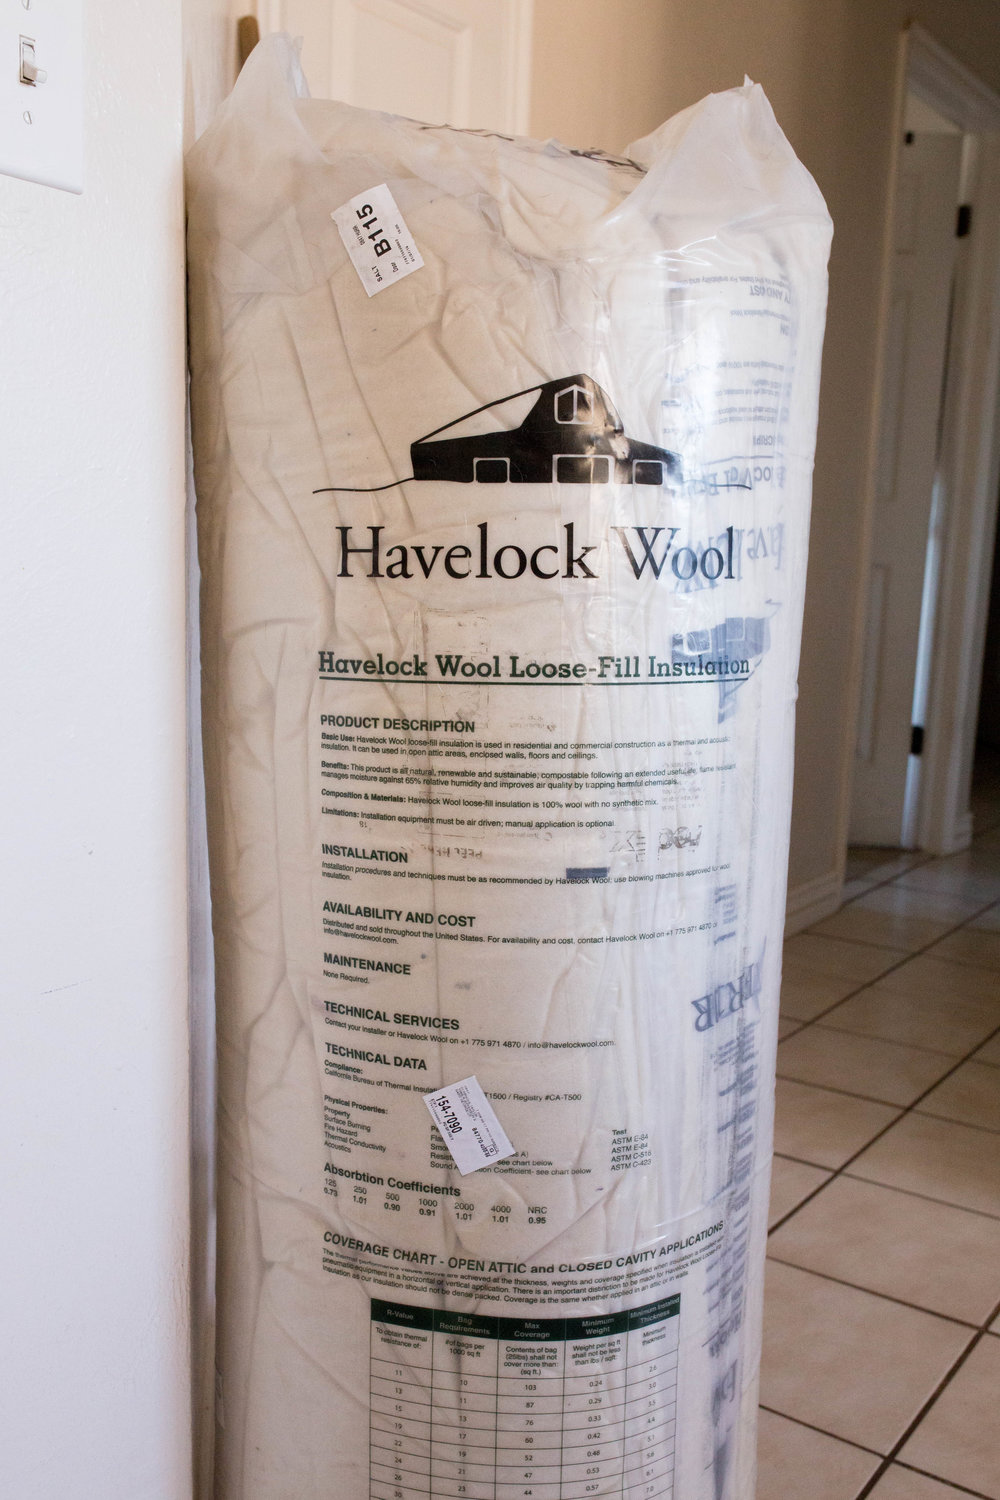 Three bags of 2-inch Havelock Wool batting -